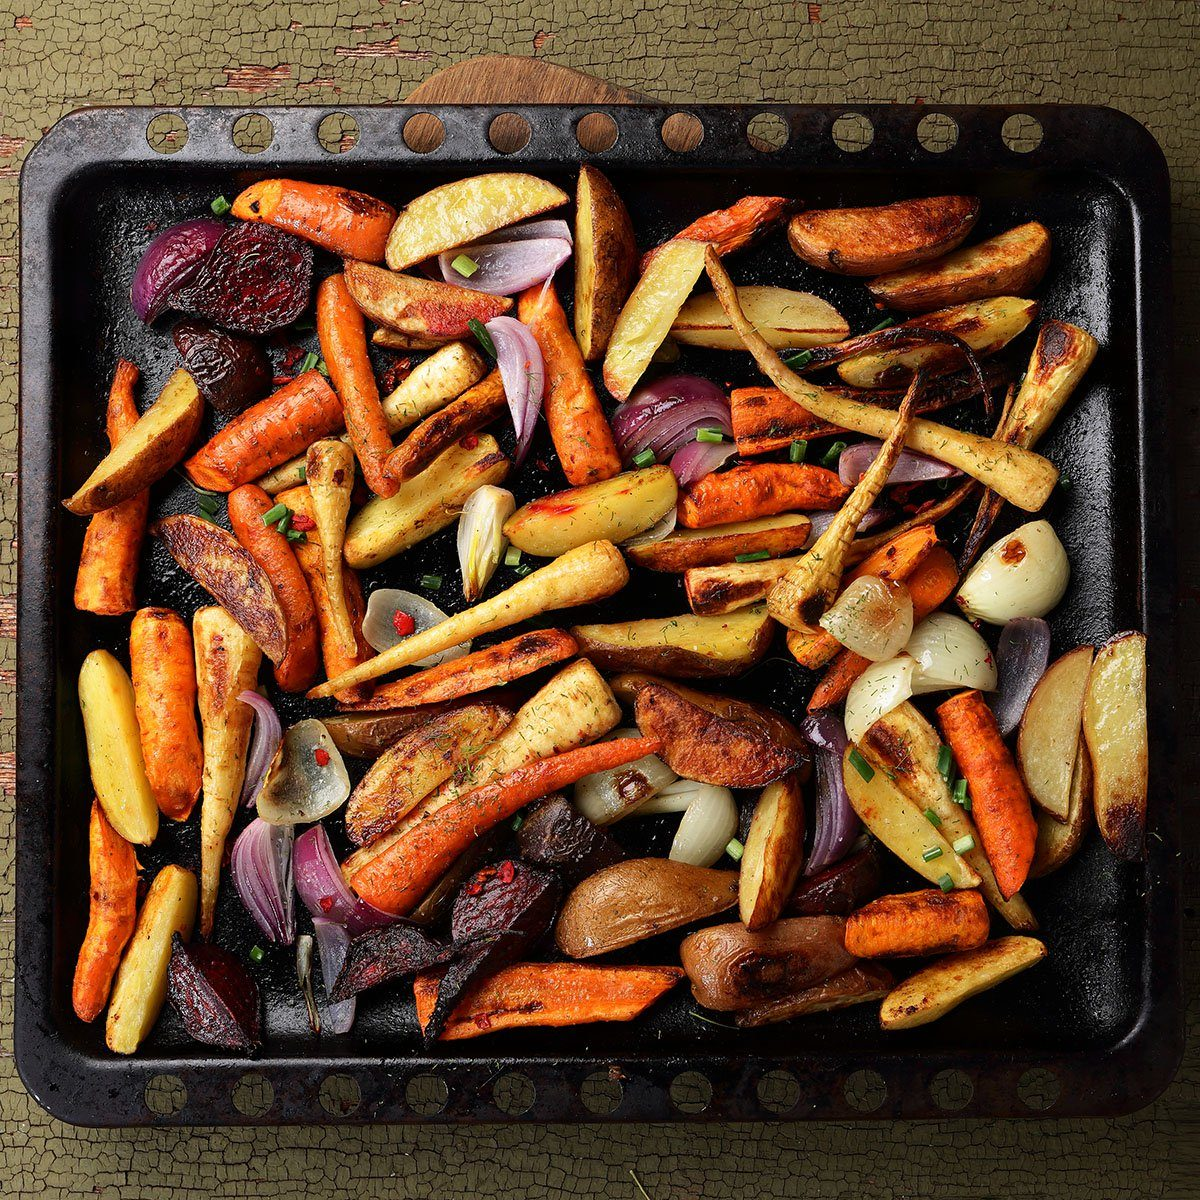 Roasted vegetables mix on baking tray, food above